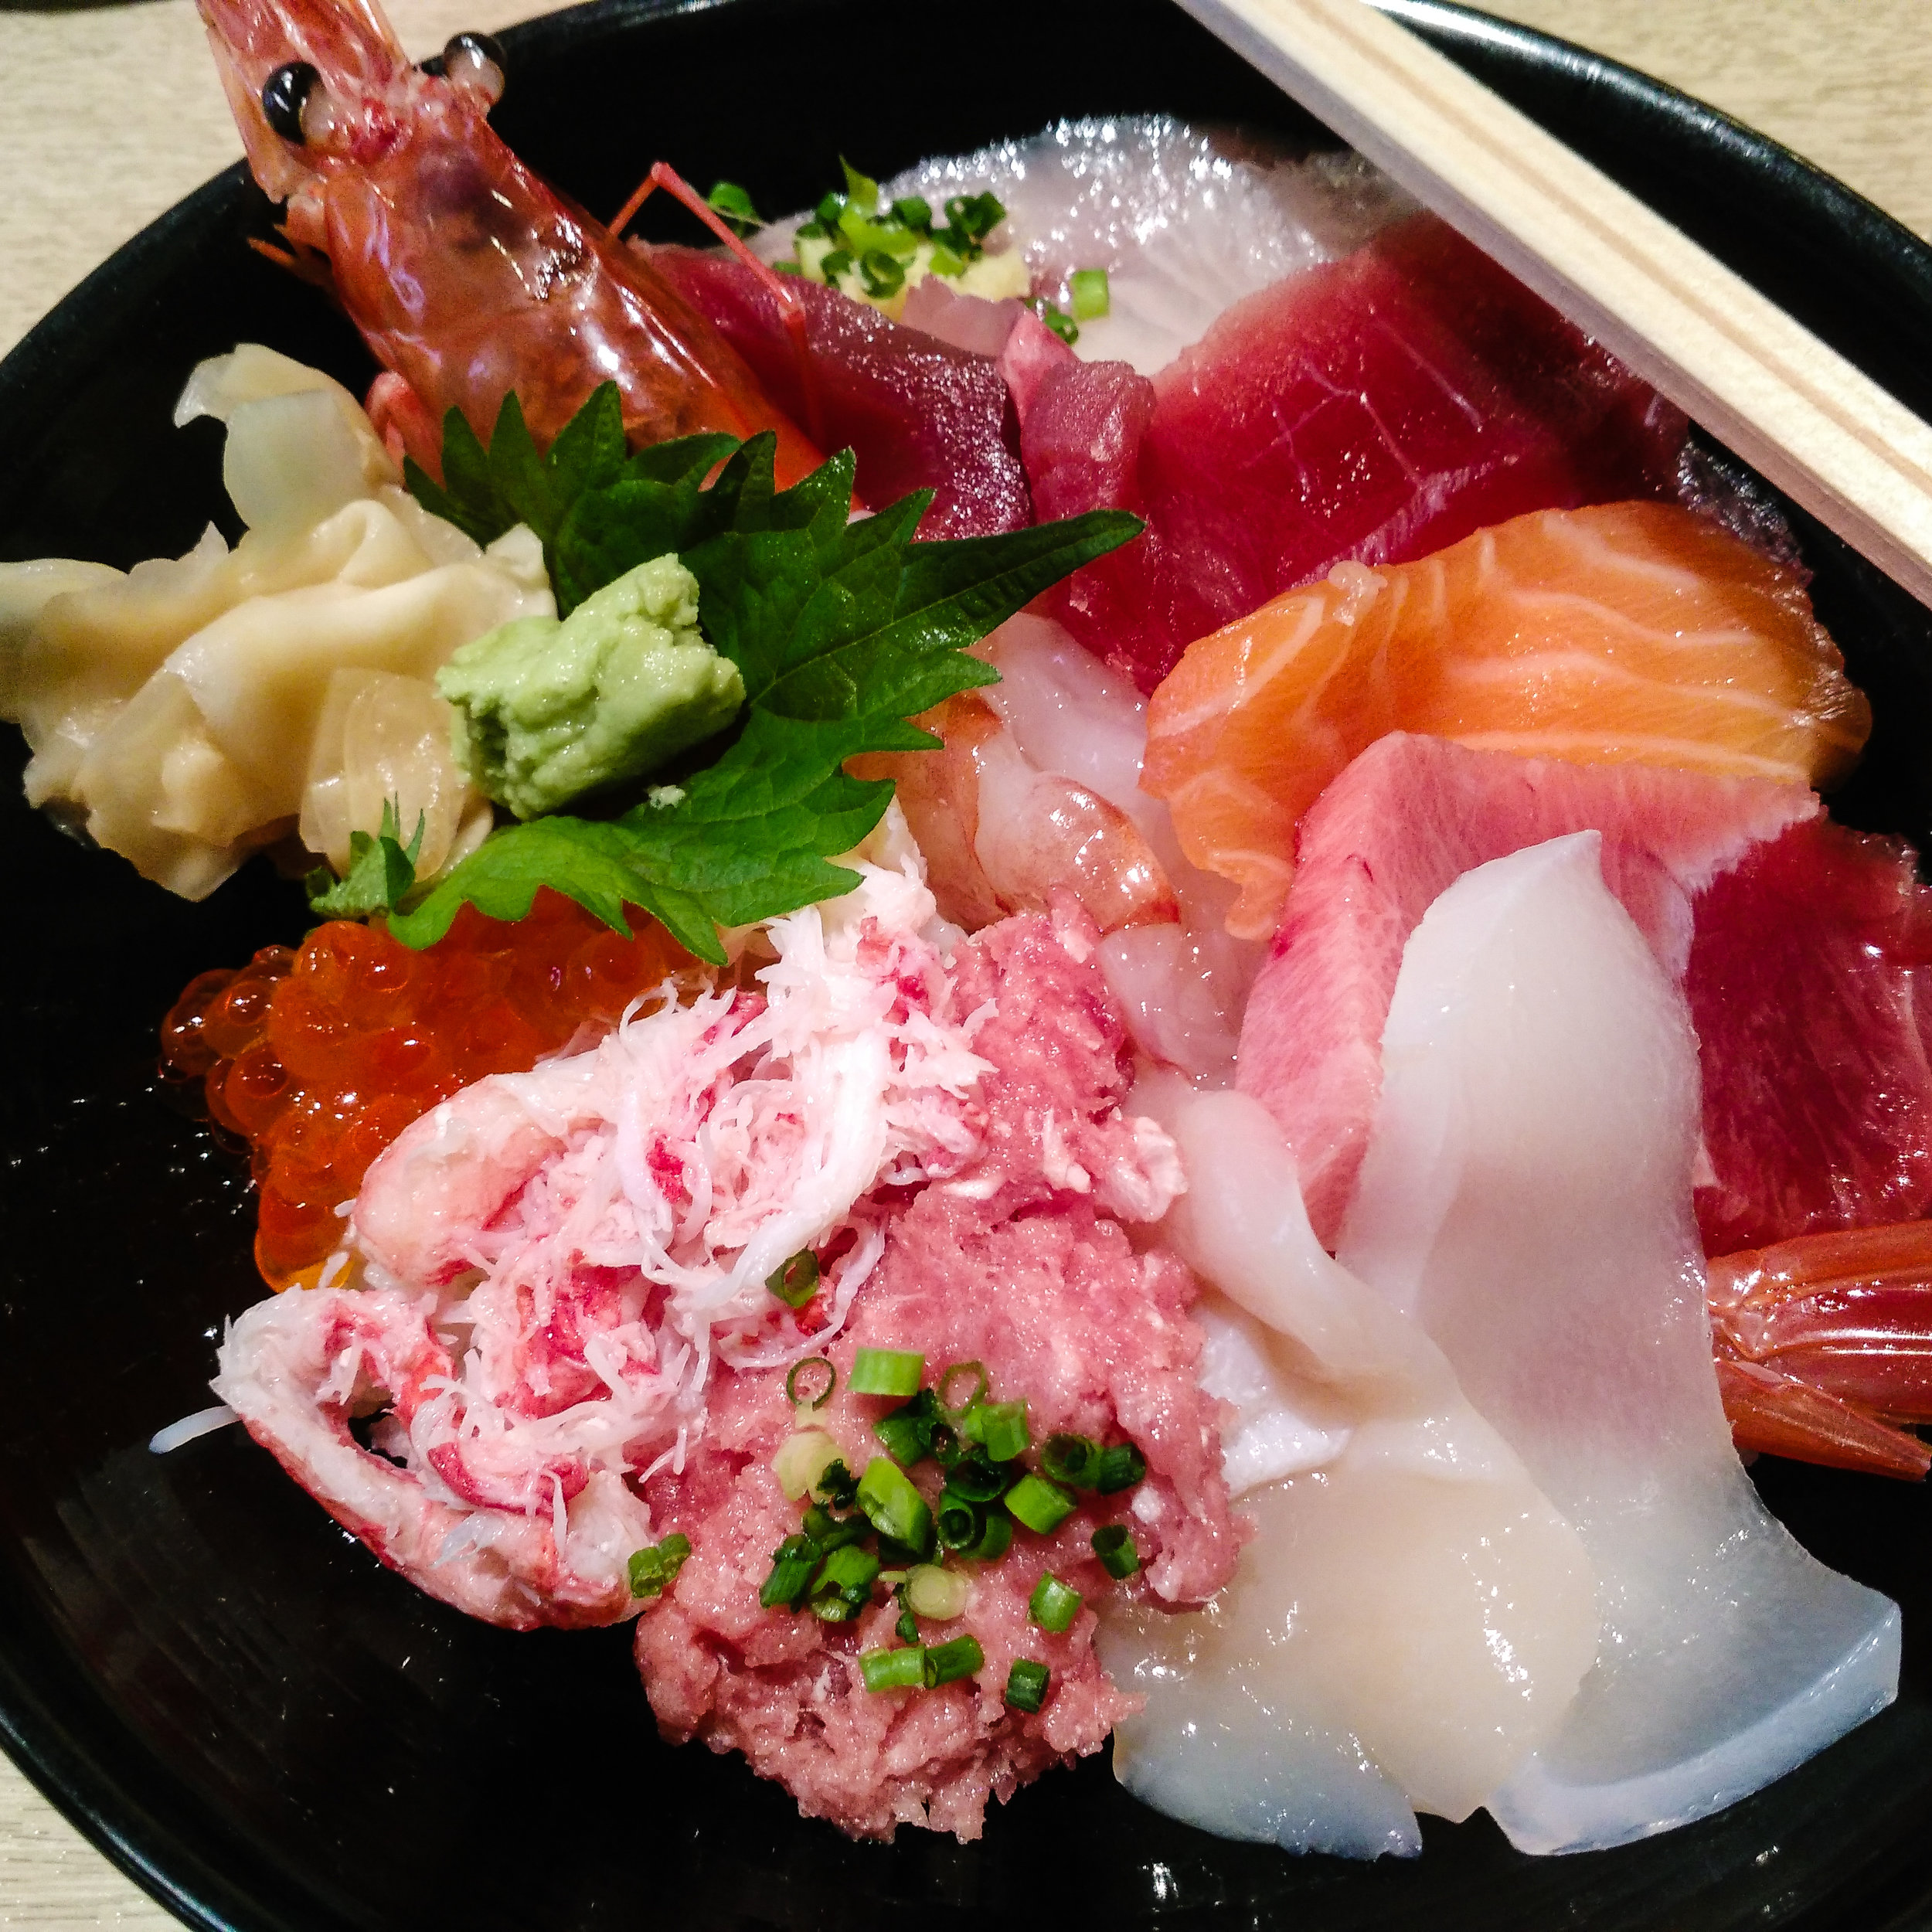 travel, work travel, pro cycling, Japan Cup, sushi, raw fish, gluten free, travel food allergies, travel food, travel healthy, food Japan